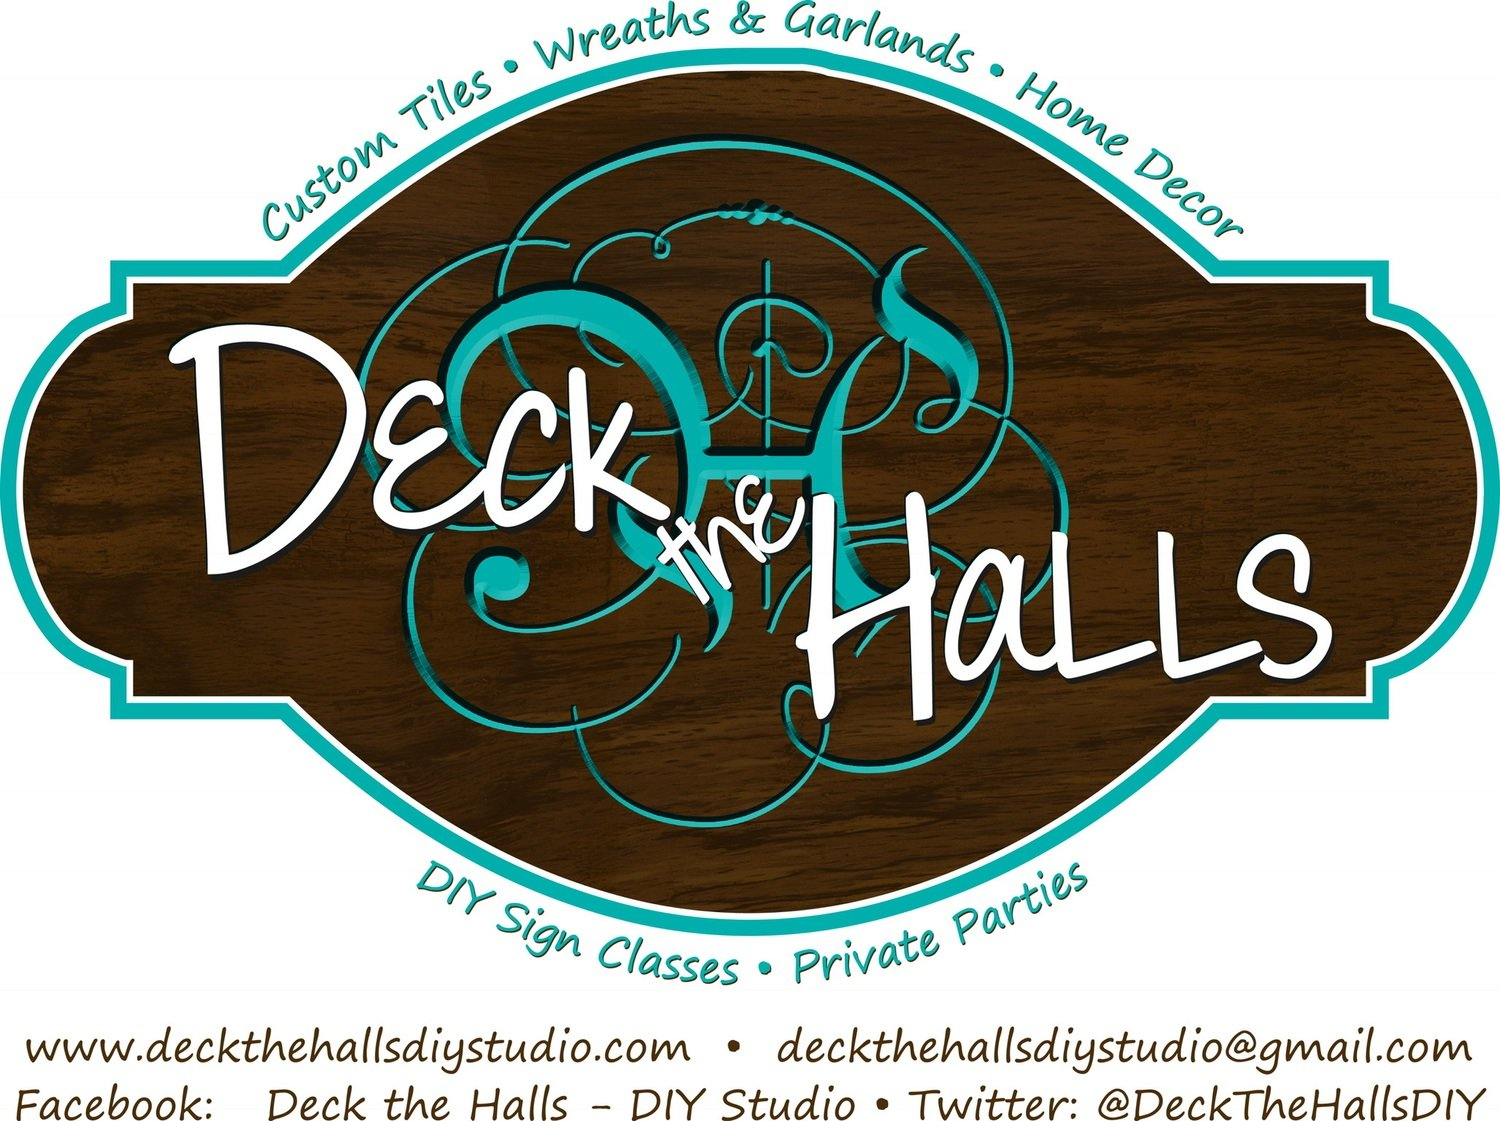 Sign Created by the Deck the Halls Staff